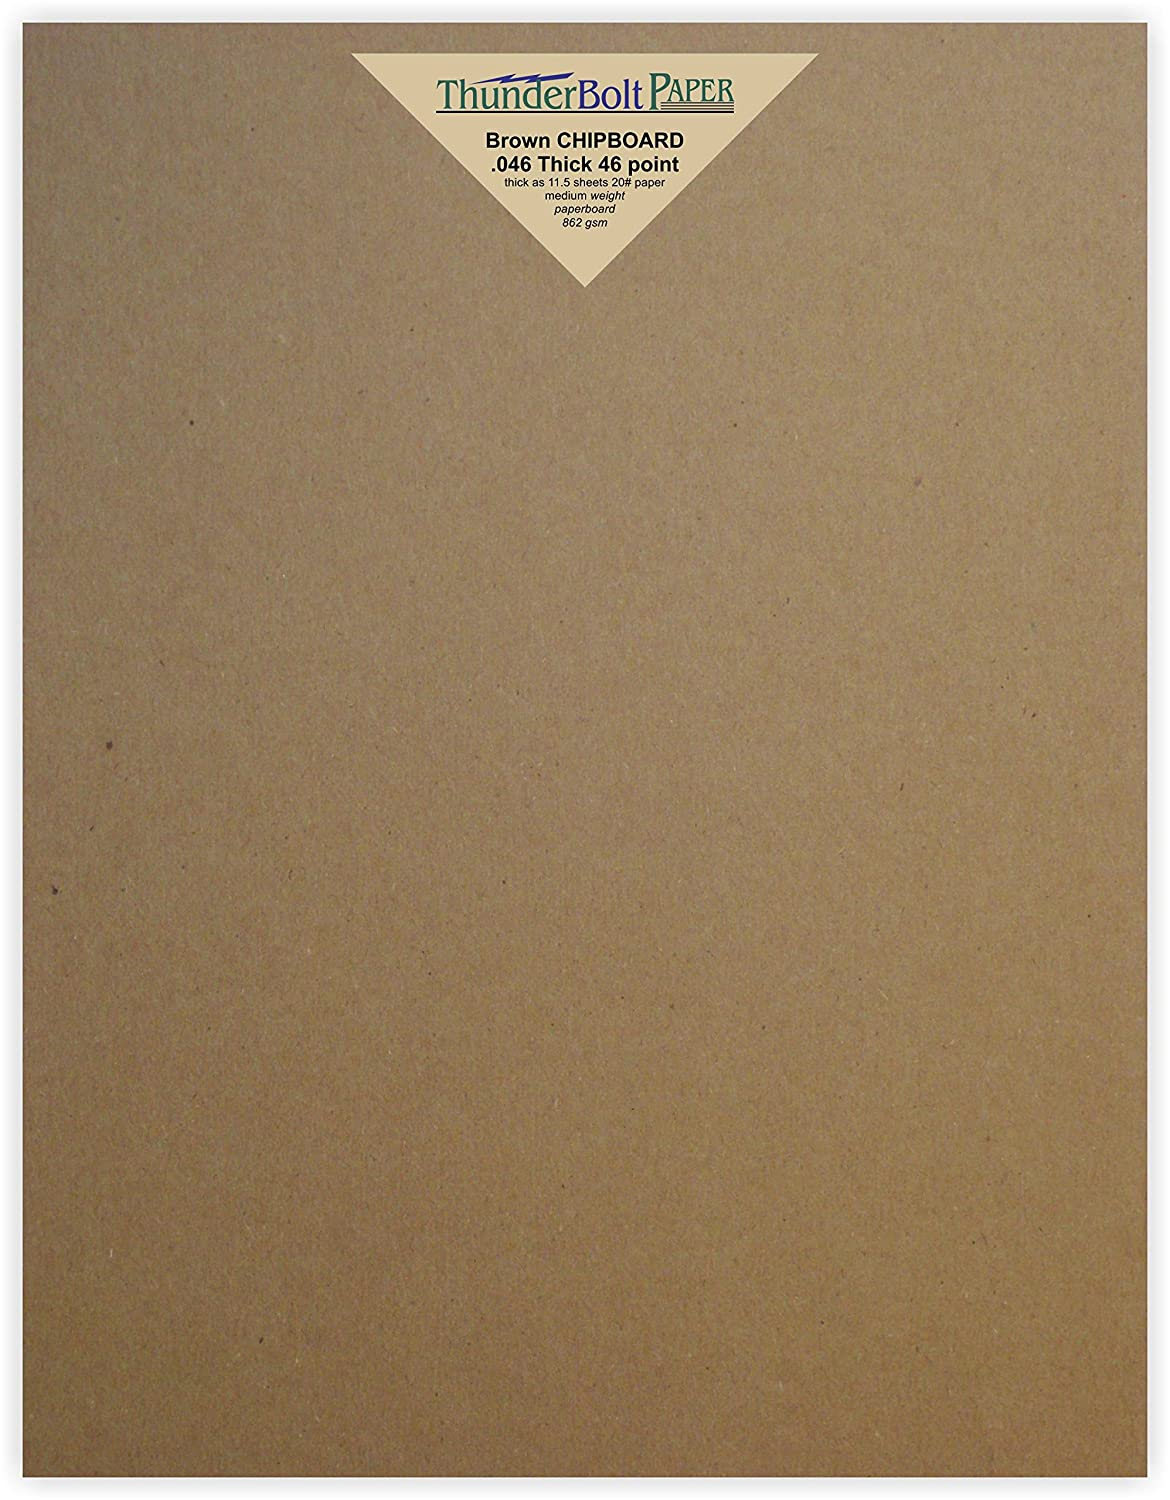 50 Sheets Chipboard 46pt (point) 8.5 X 11 Inches Heavy Weight Letter Size .046 Caliper Thick Cardboard Craft|Packaging Brown Kraft Paper Board TBP 4336978340